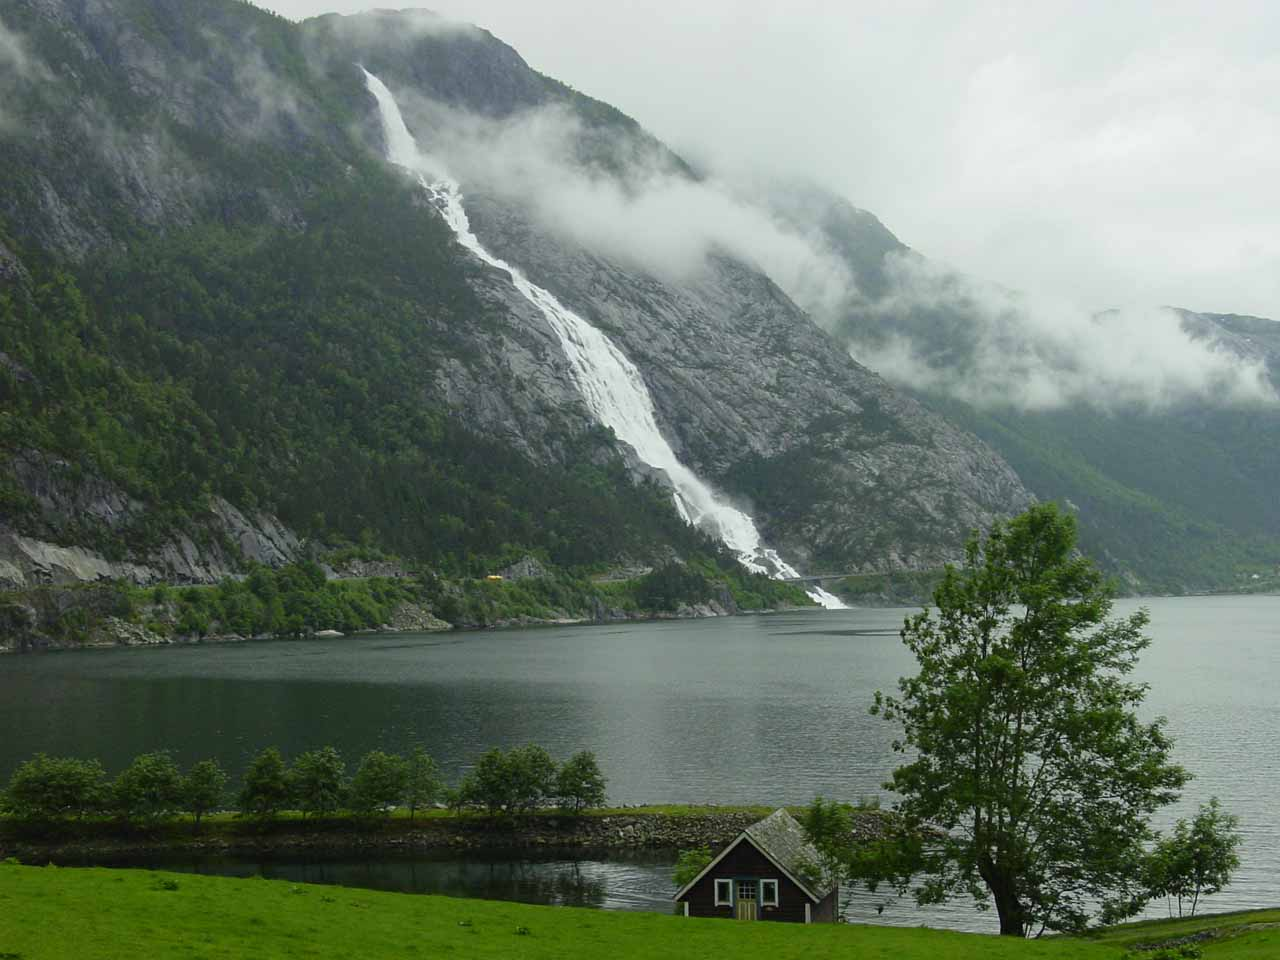 The waterfall we visited just prior to entering Oddadalen was Langfoss seen here tumbling over the Åkrafjord